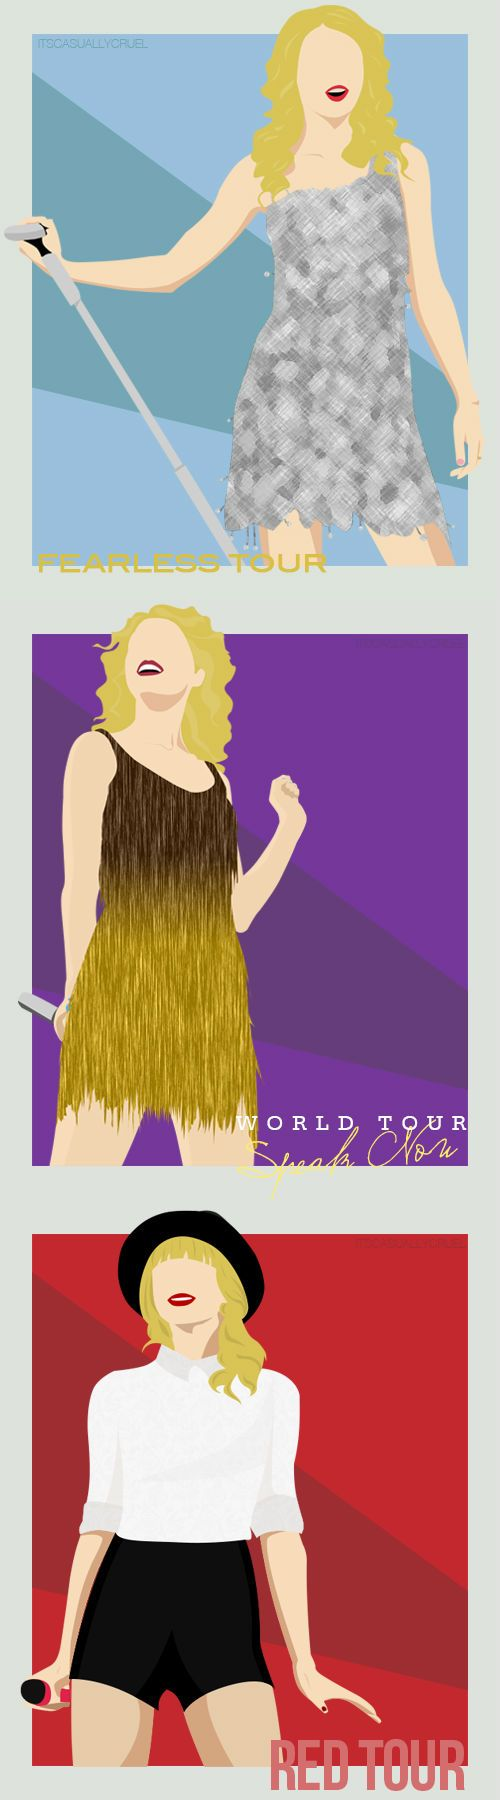 Journey To Fearless, The Speak Now World Tour and The Red Tour! And there is about to be a new one 1989 WORLD TOUR!!